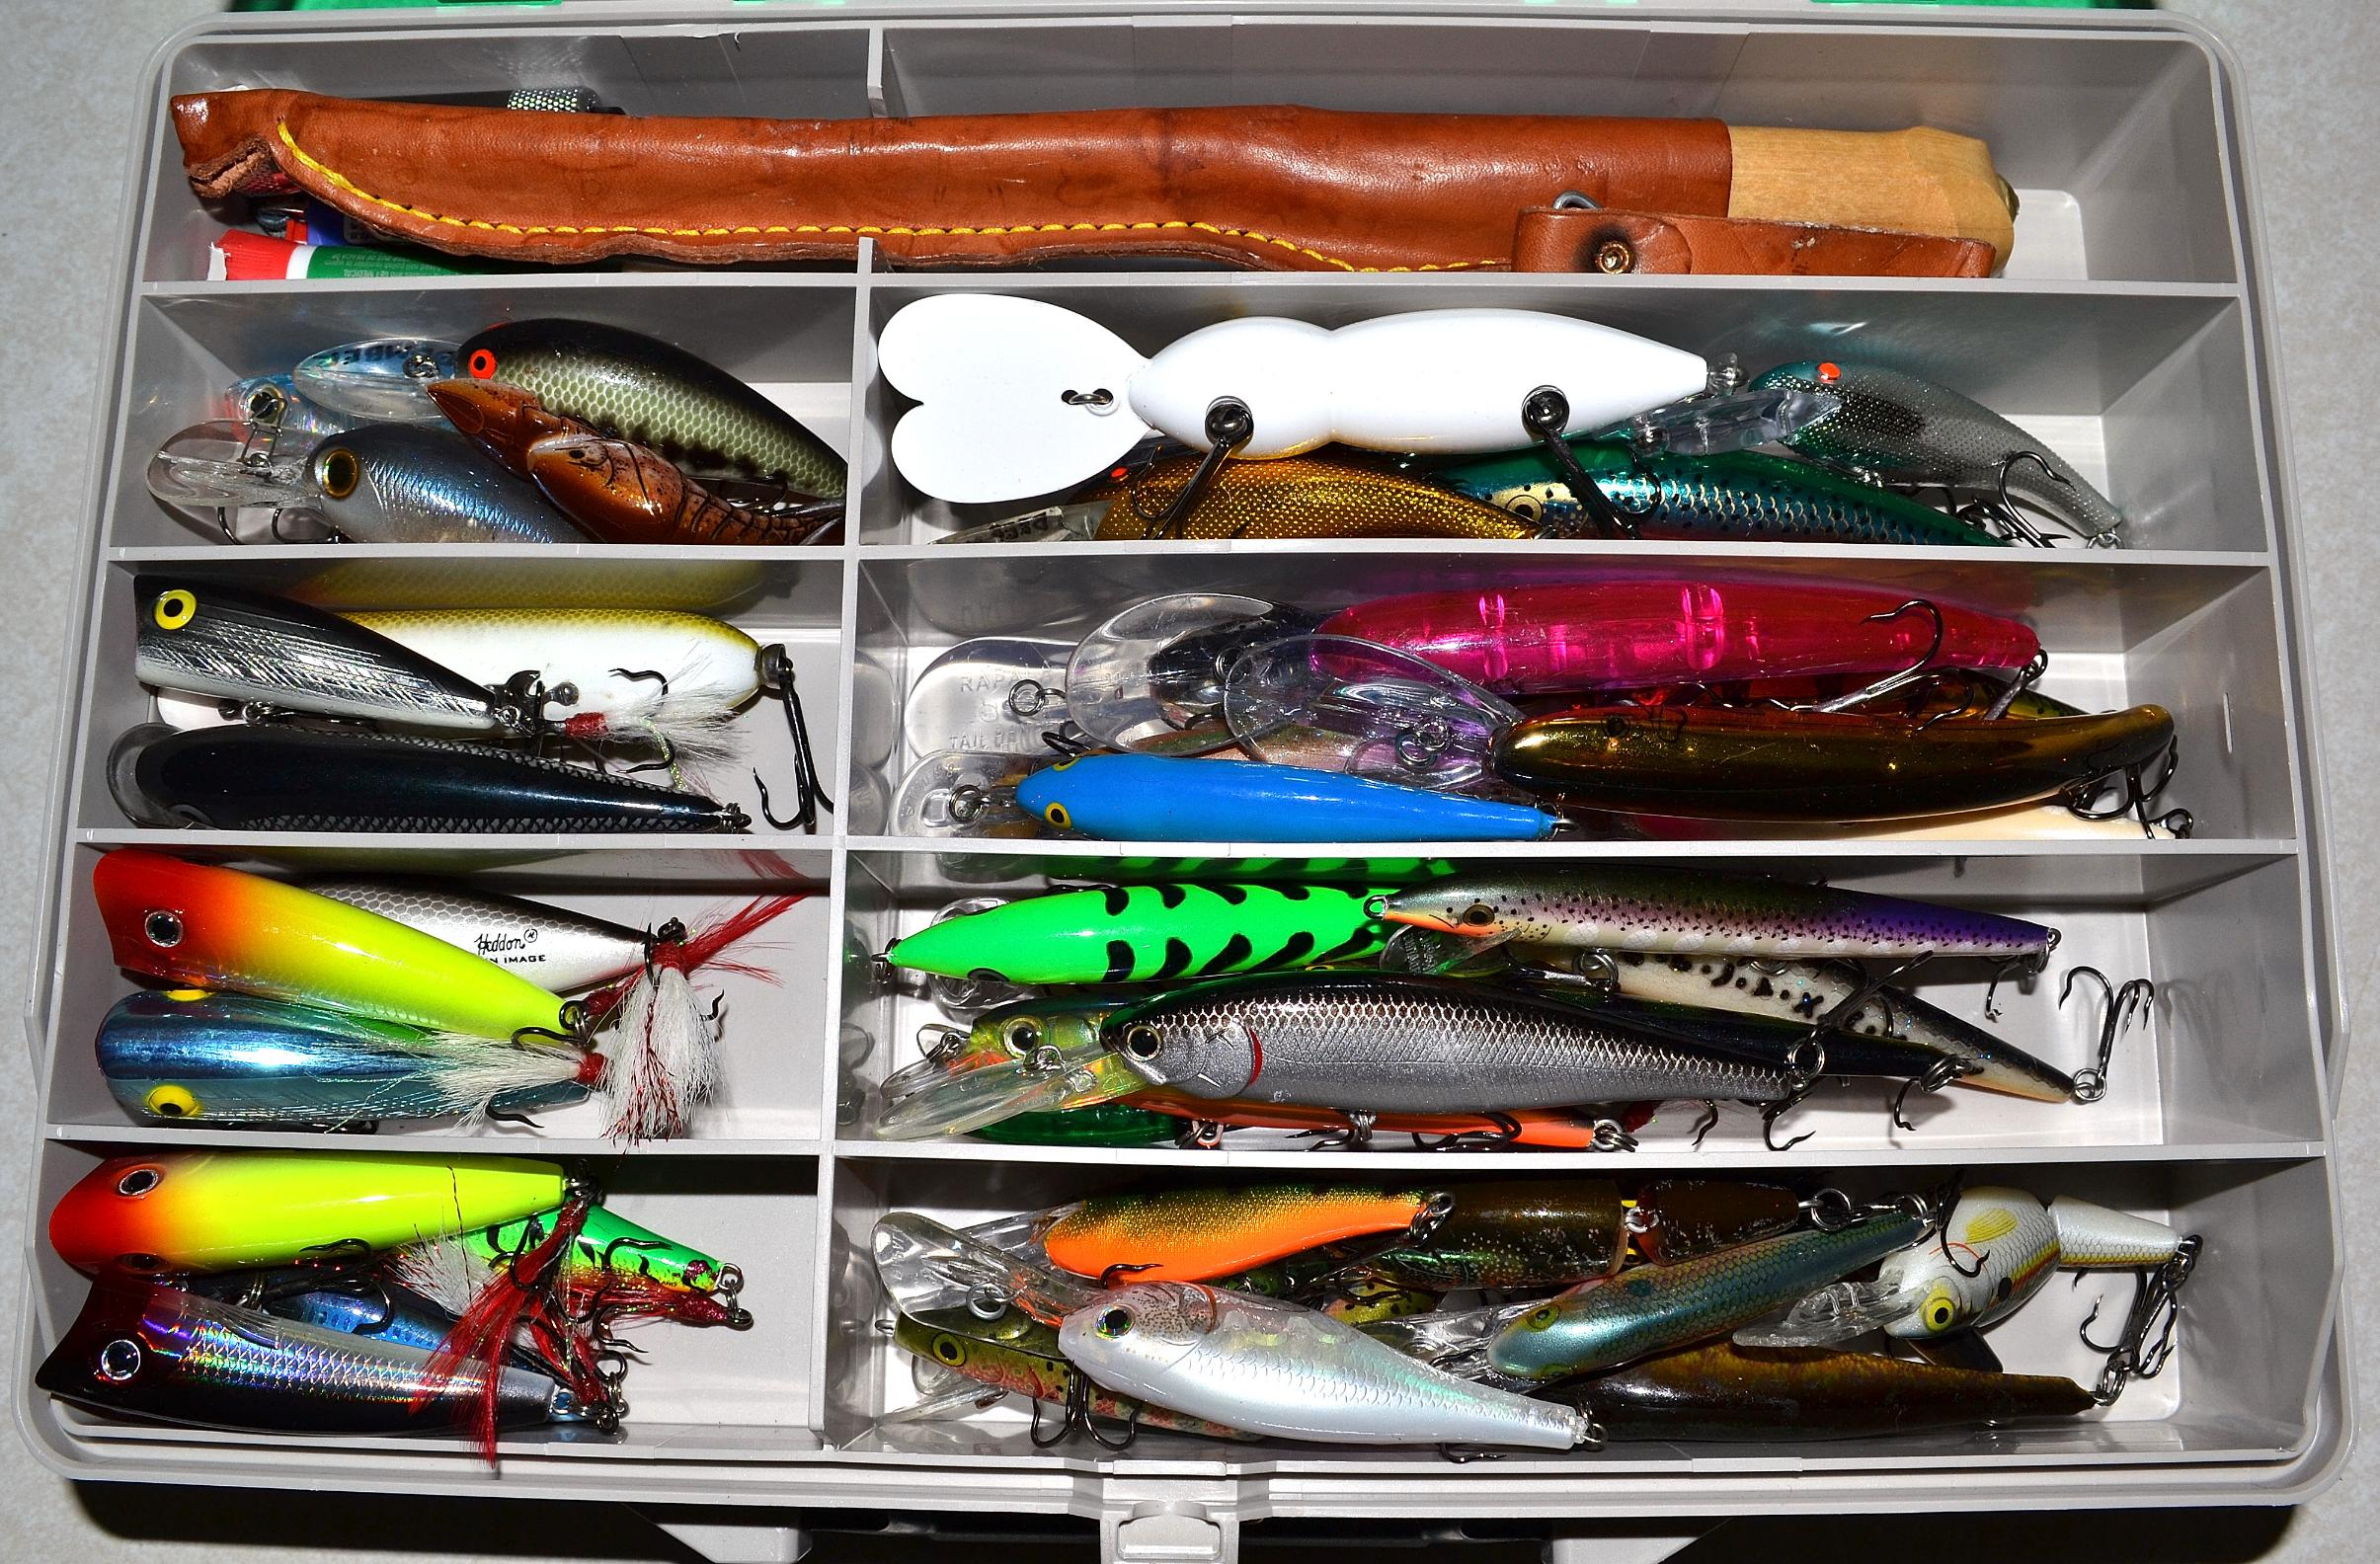 Bwca may june tackle box boundary waters fishing forum for Fishing gear and tackle